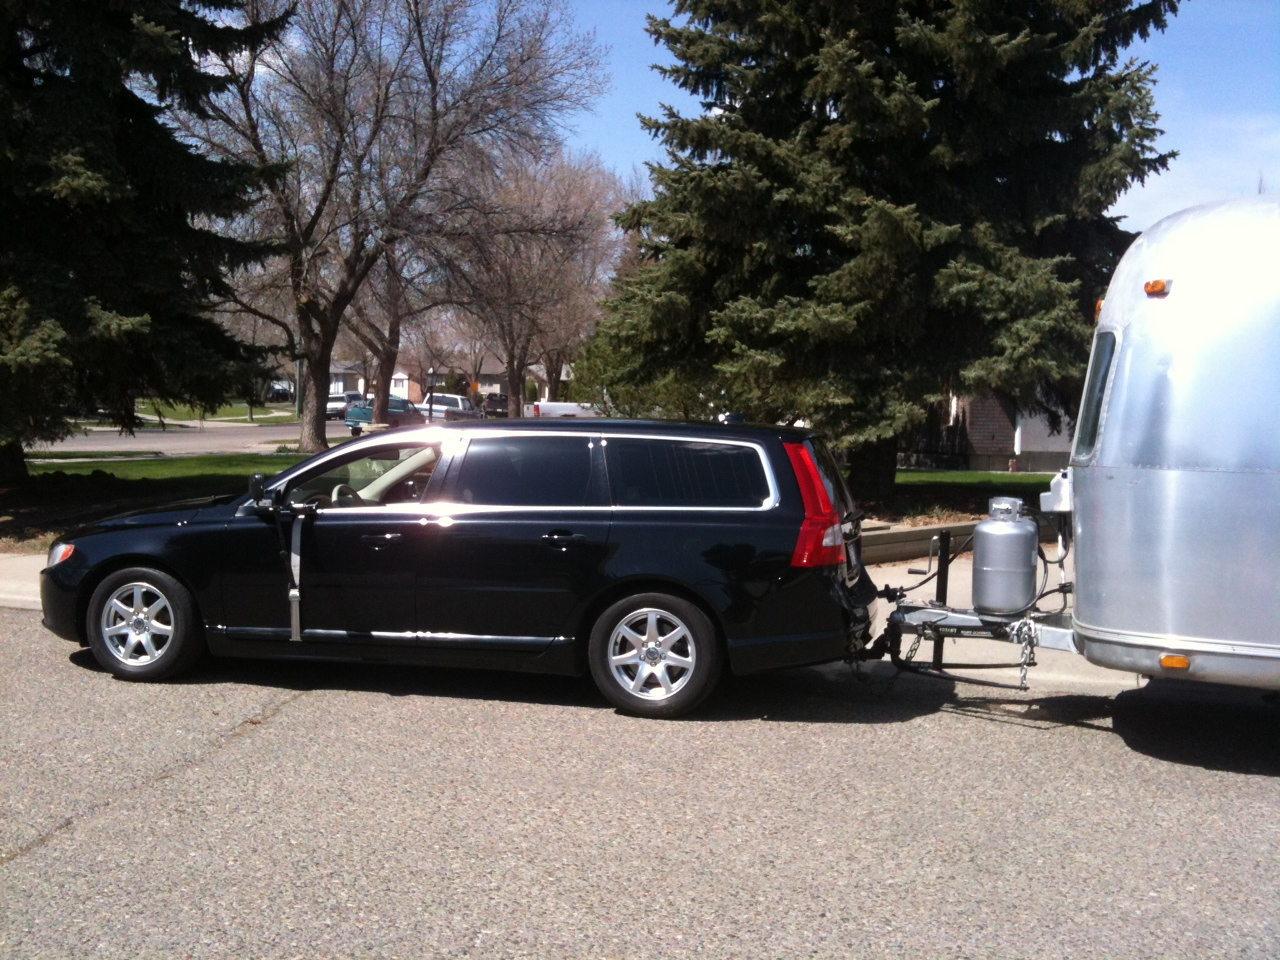 Click image for larger version  Name:Volvo V70 27  Airstream.JPG Views:81 Size:554.3 KB ID:204465